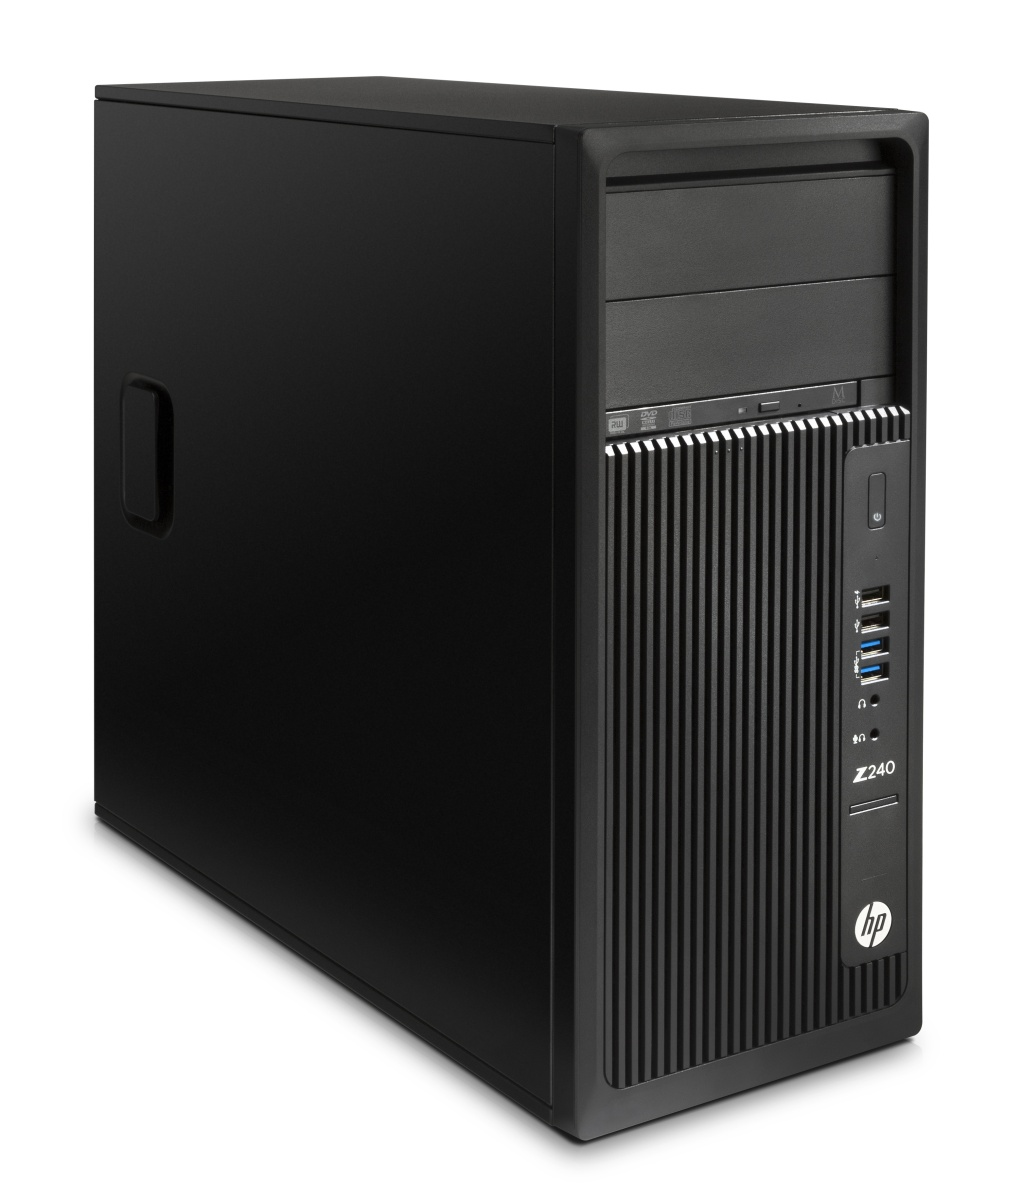 "HP Z240 TWR Intel i5-6600 3.3GHz /16GB DDR4-2133 nECC (2x8GB)/256GB SSD 2.5"" / Intel HD GFX 530 /Win 10 Pro + Win 7 Pro"